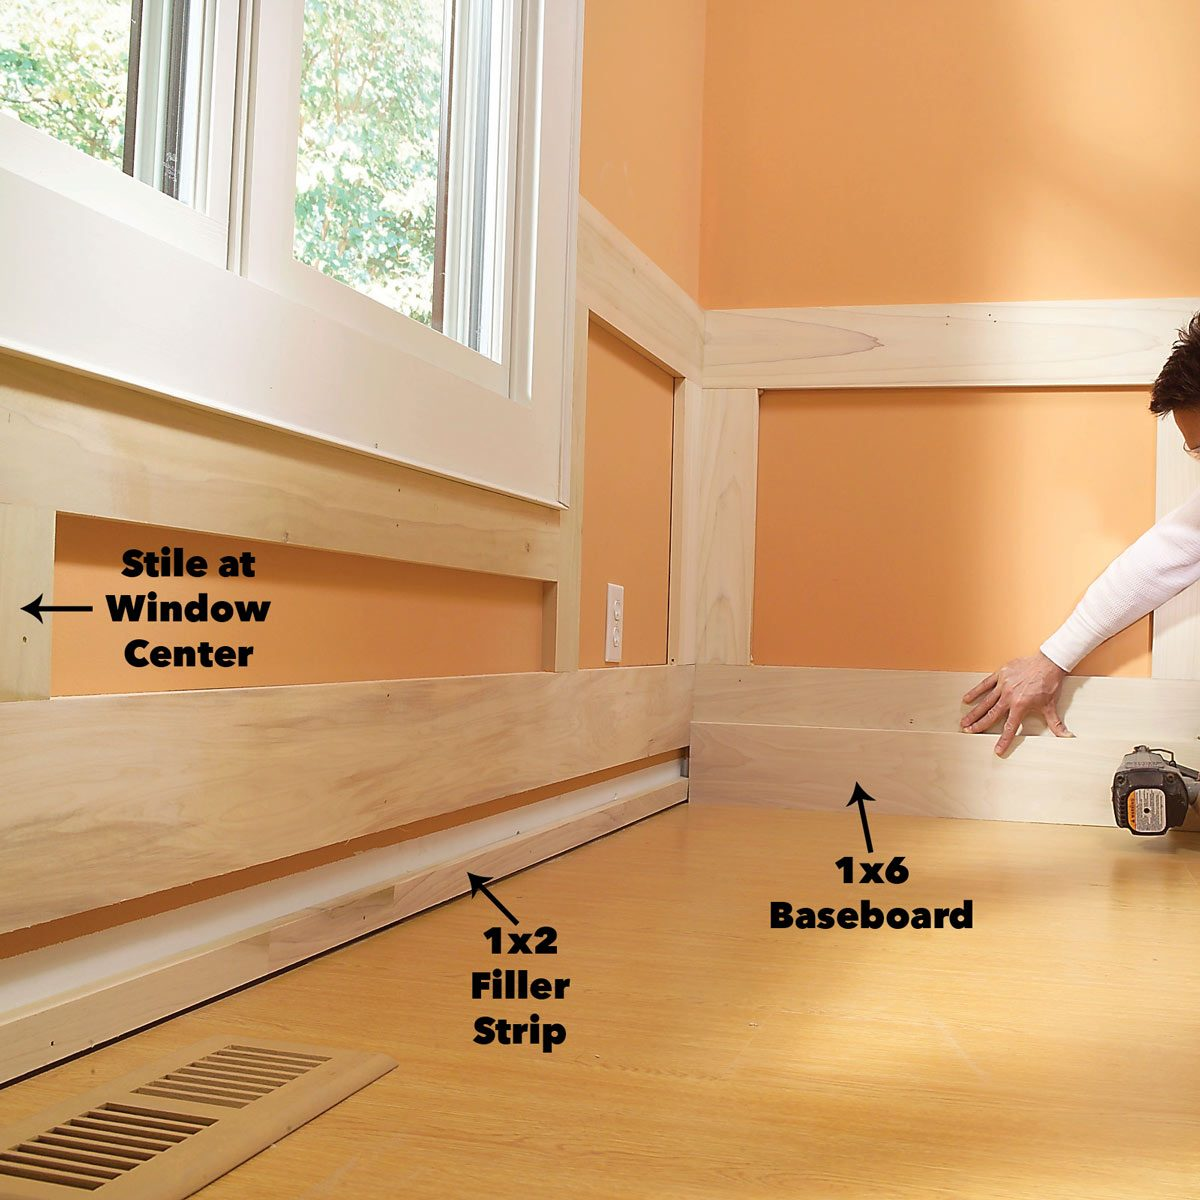 Nail the baseboard wainscoting